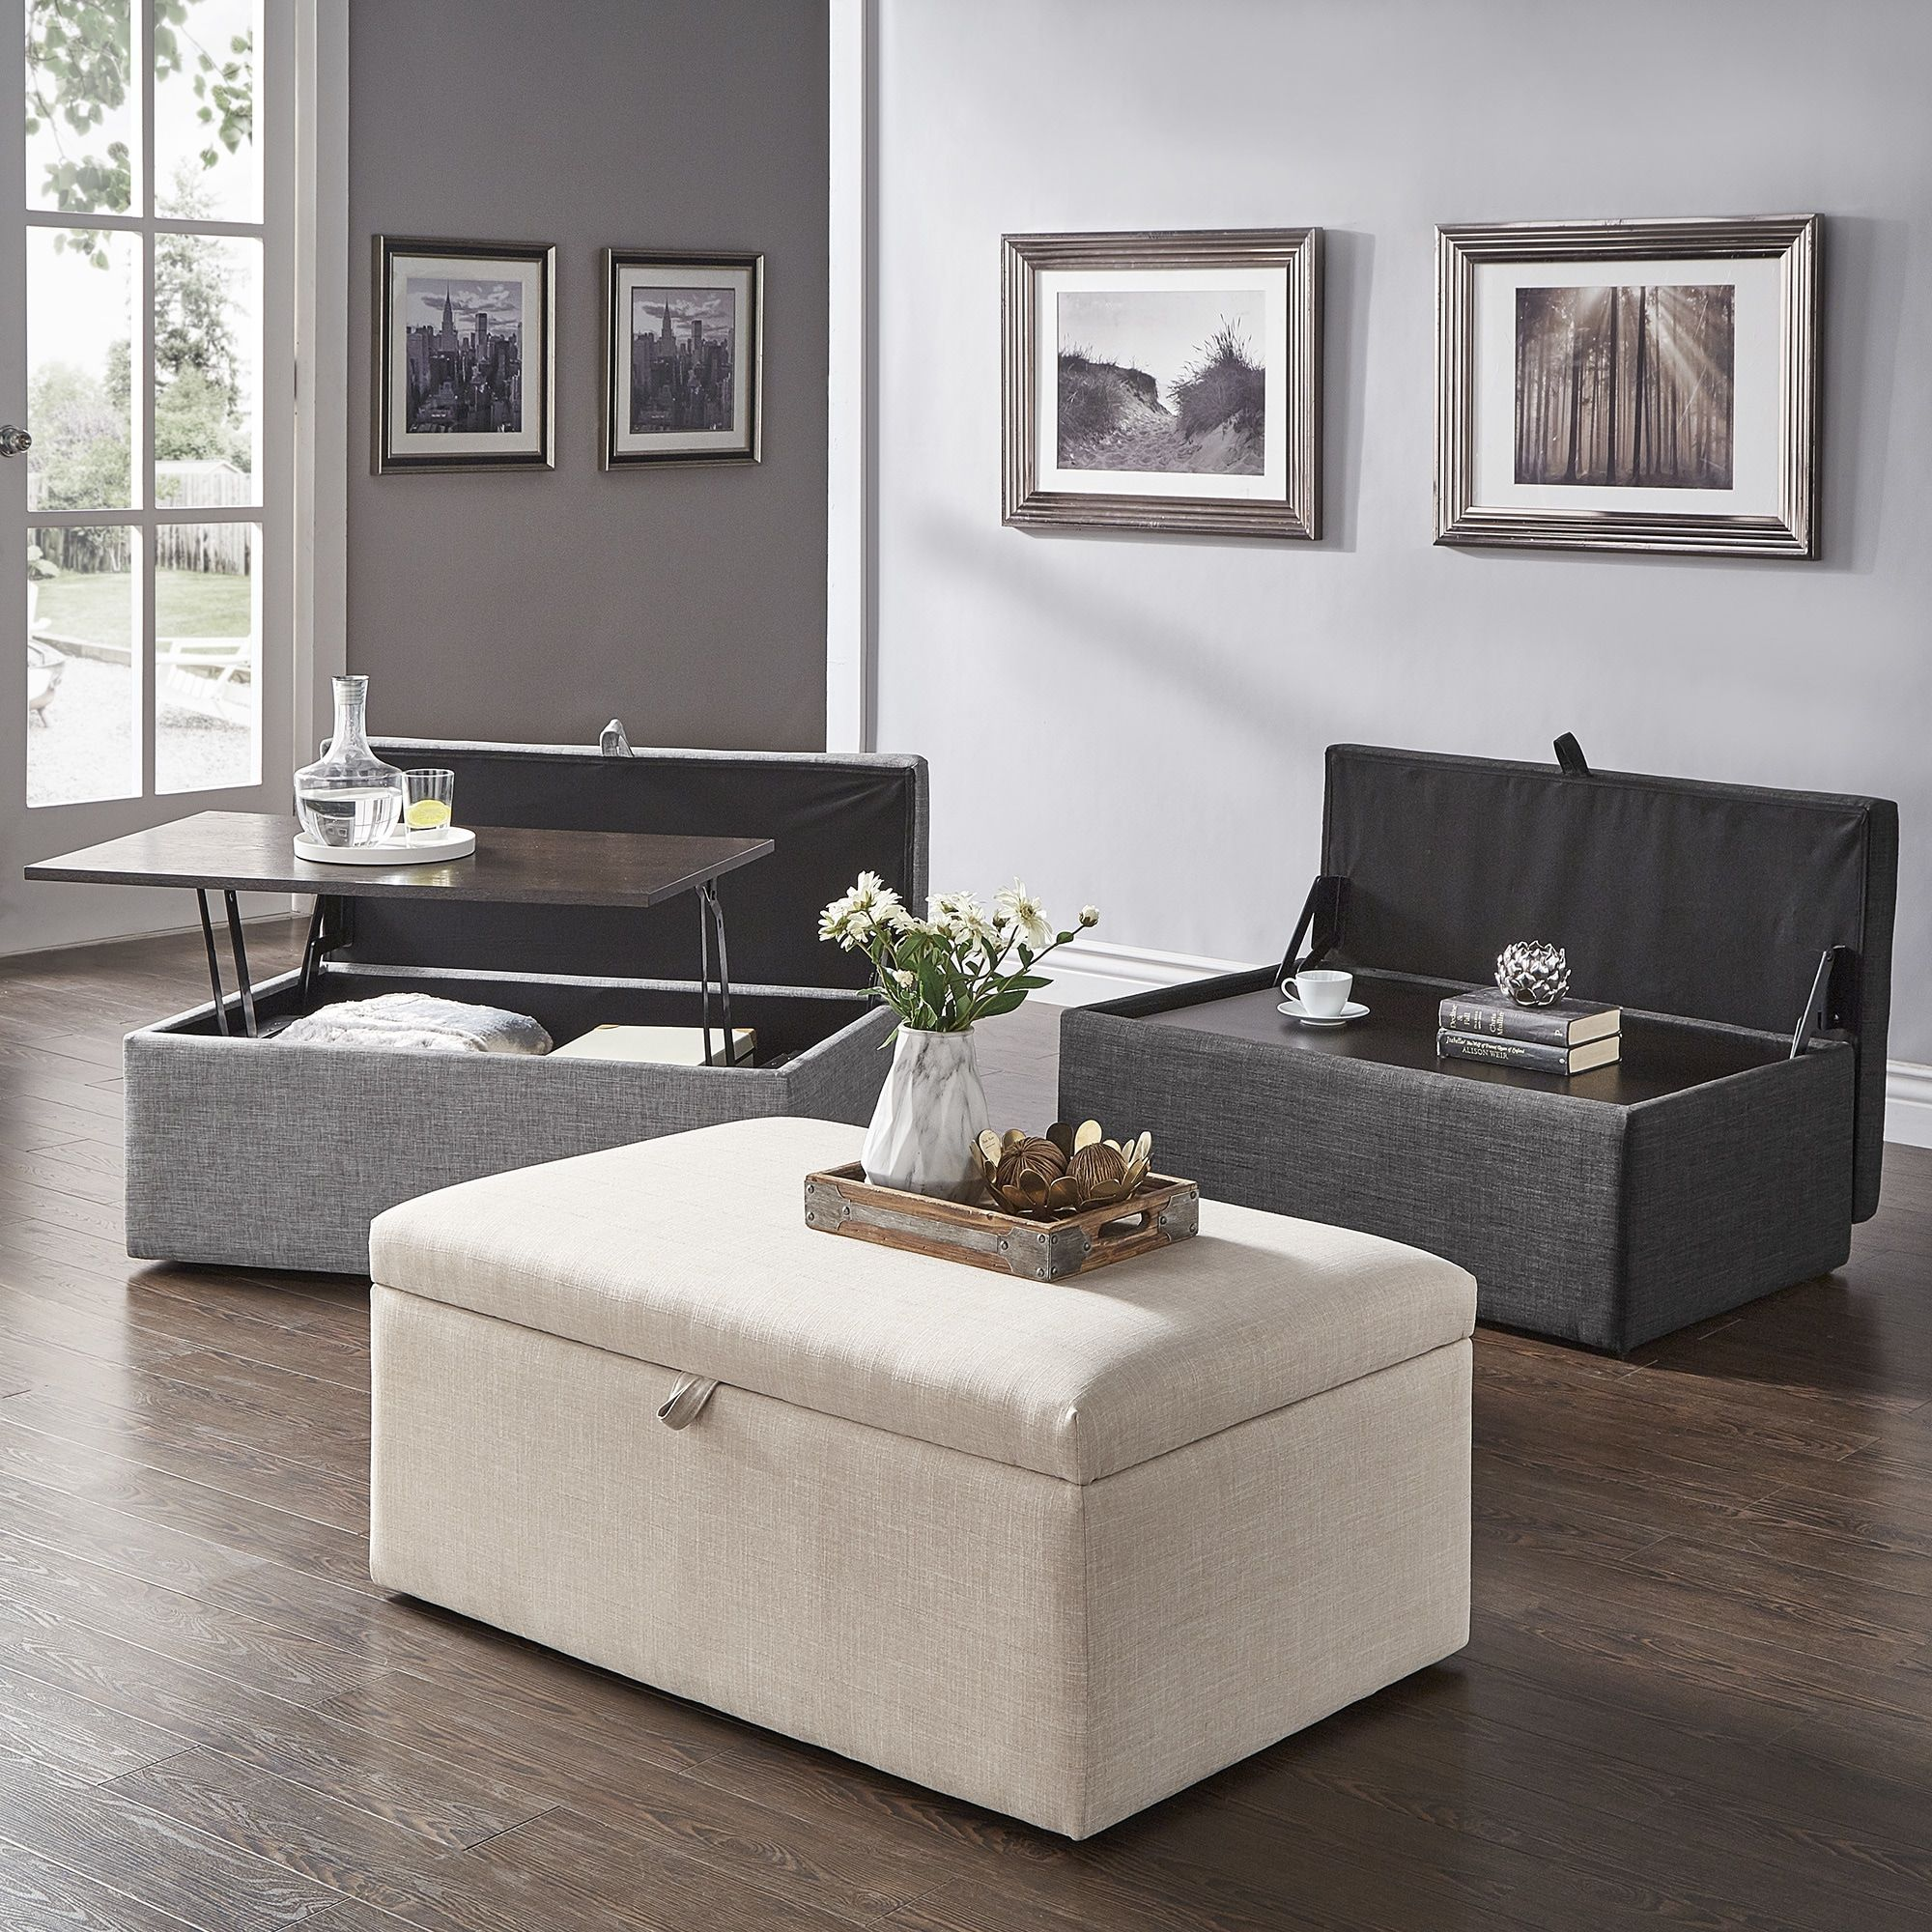 22++ Living room ottoman with storage ideas in 2021